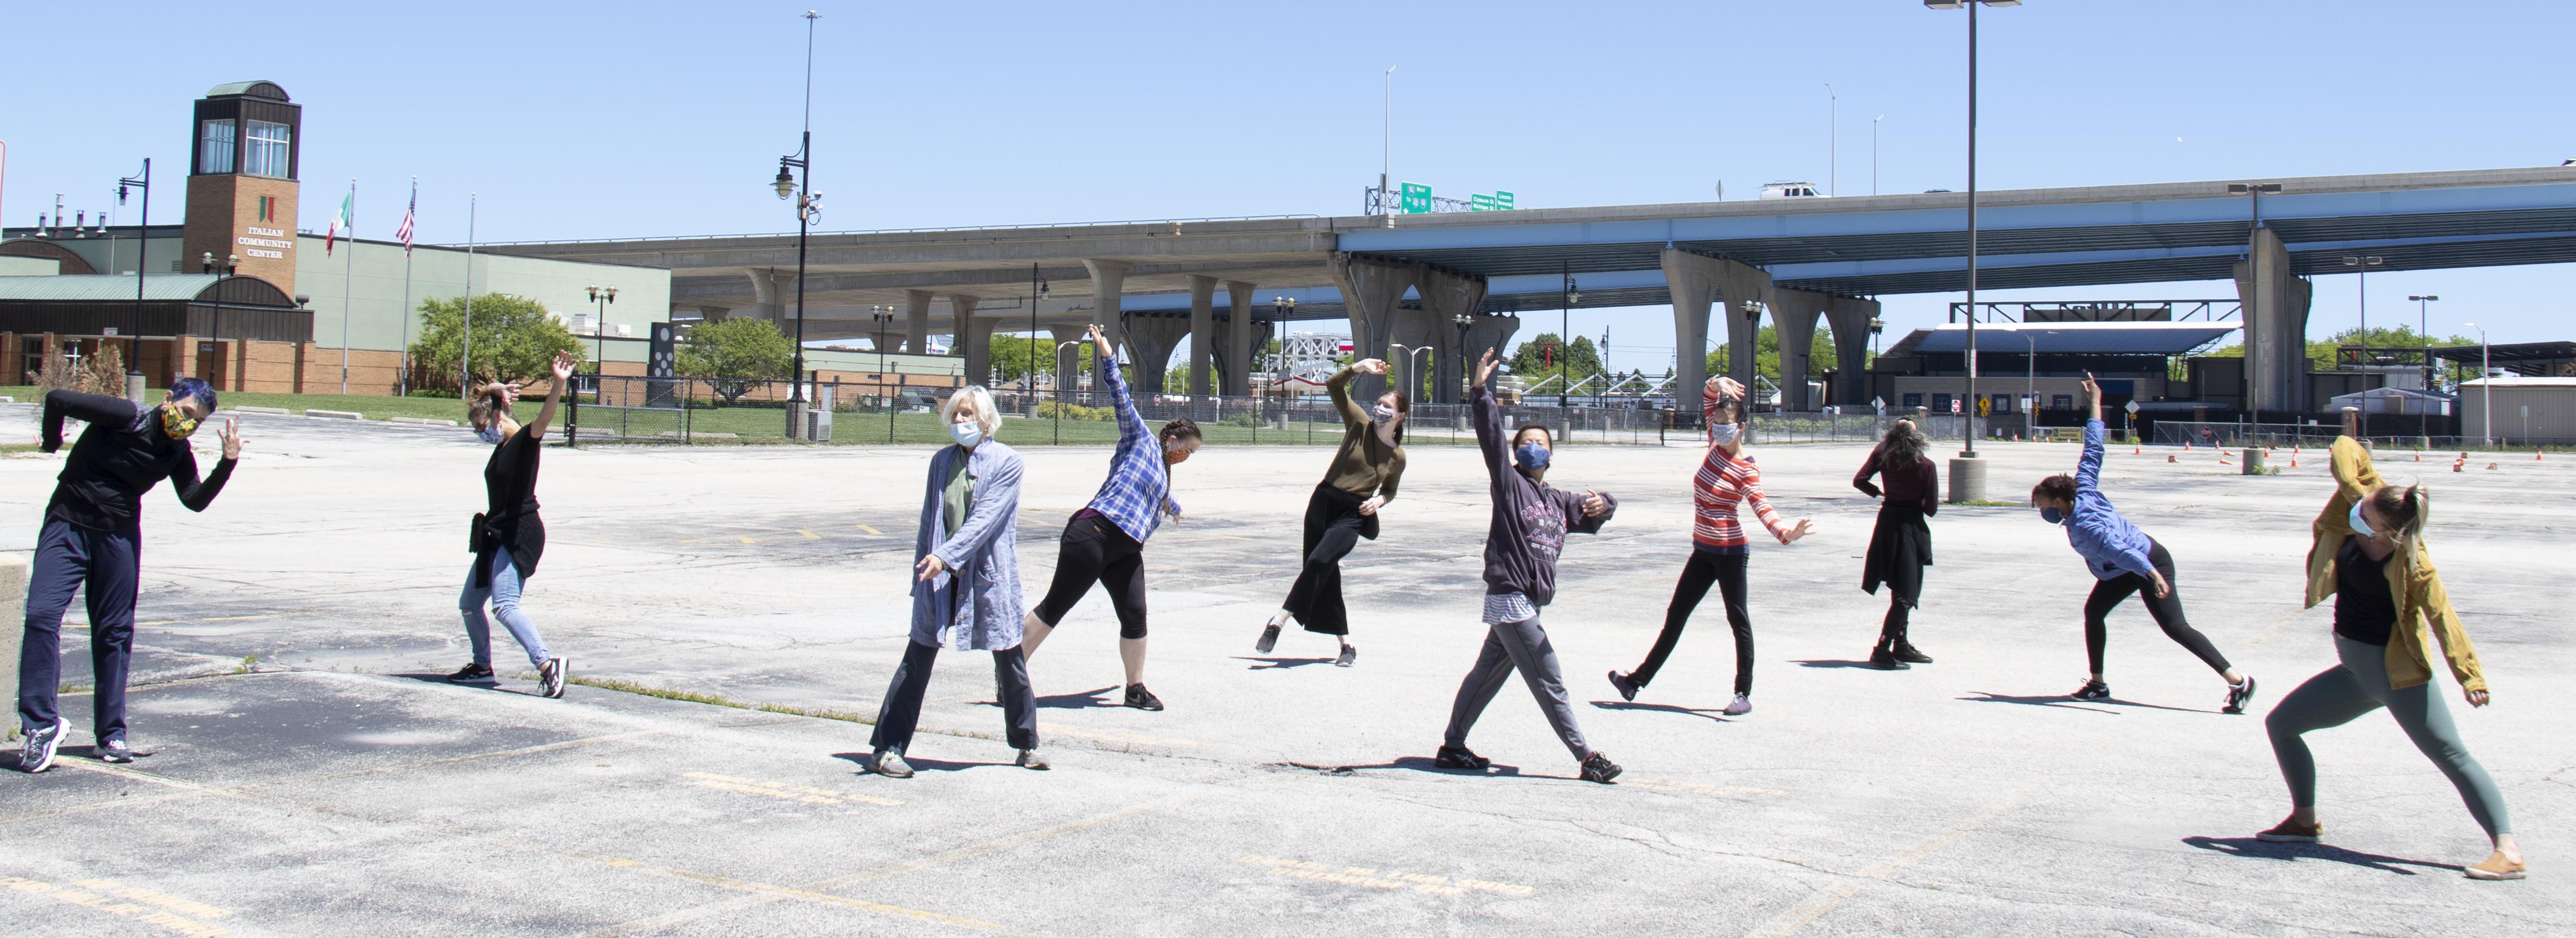 Wild Space Creates Parking Lot Dance #2: On the River